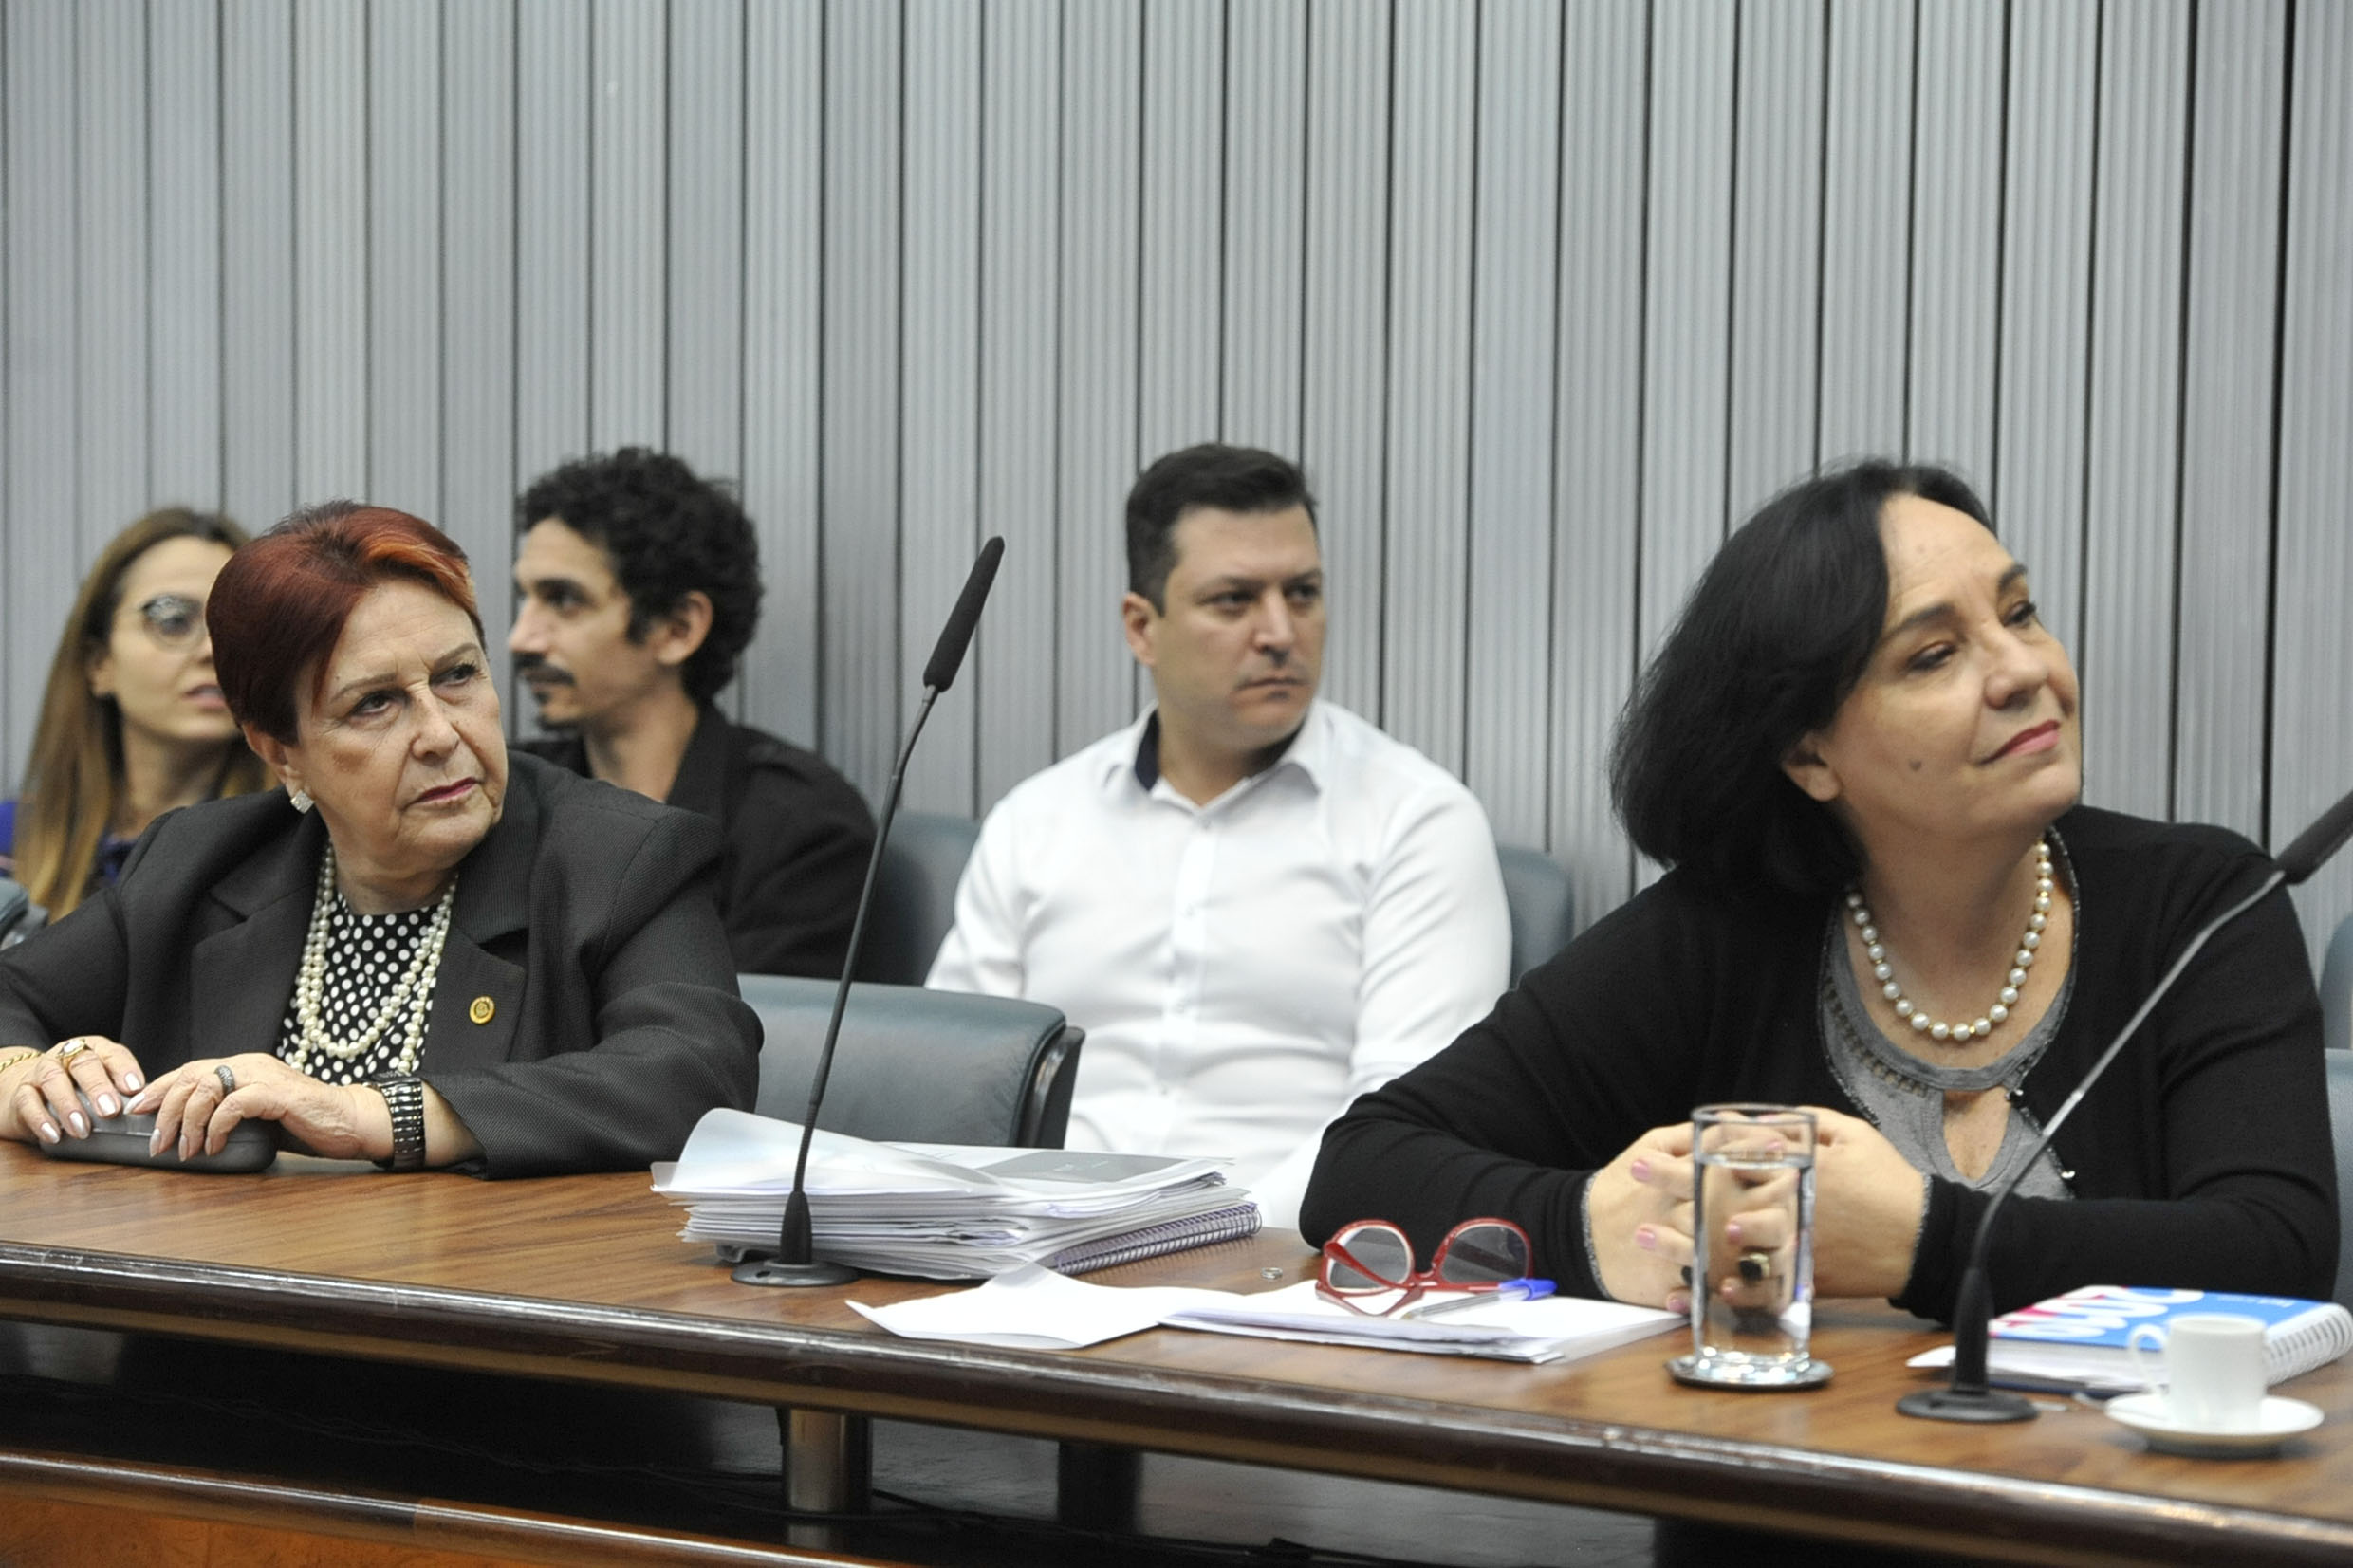 Parlamentares presentes	<a style='float:right' href='https://www3.al.sp.gov.br/repositorio/noticia/N-04-2019/fg232614.jpg' target=_blank><img src='/_img/material-file-download-white.png' width='14px' alt='Clique para baixar a imagem'></a>